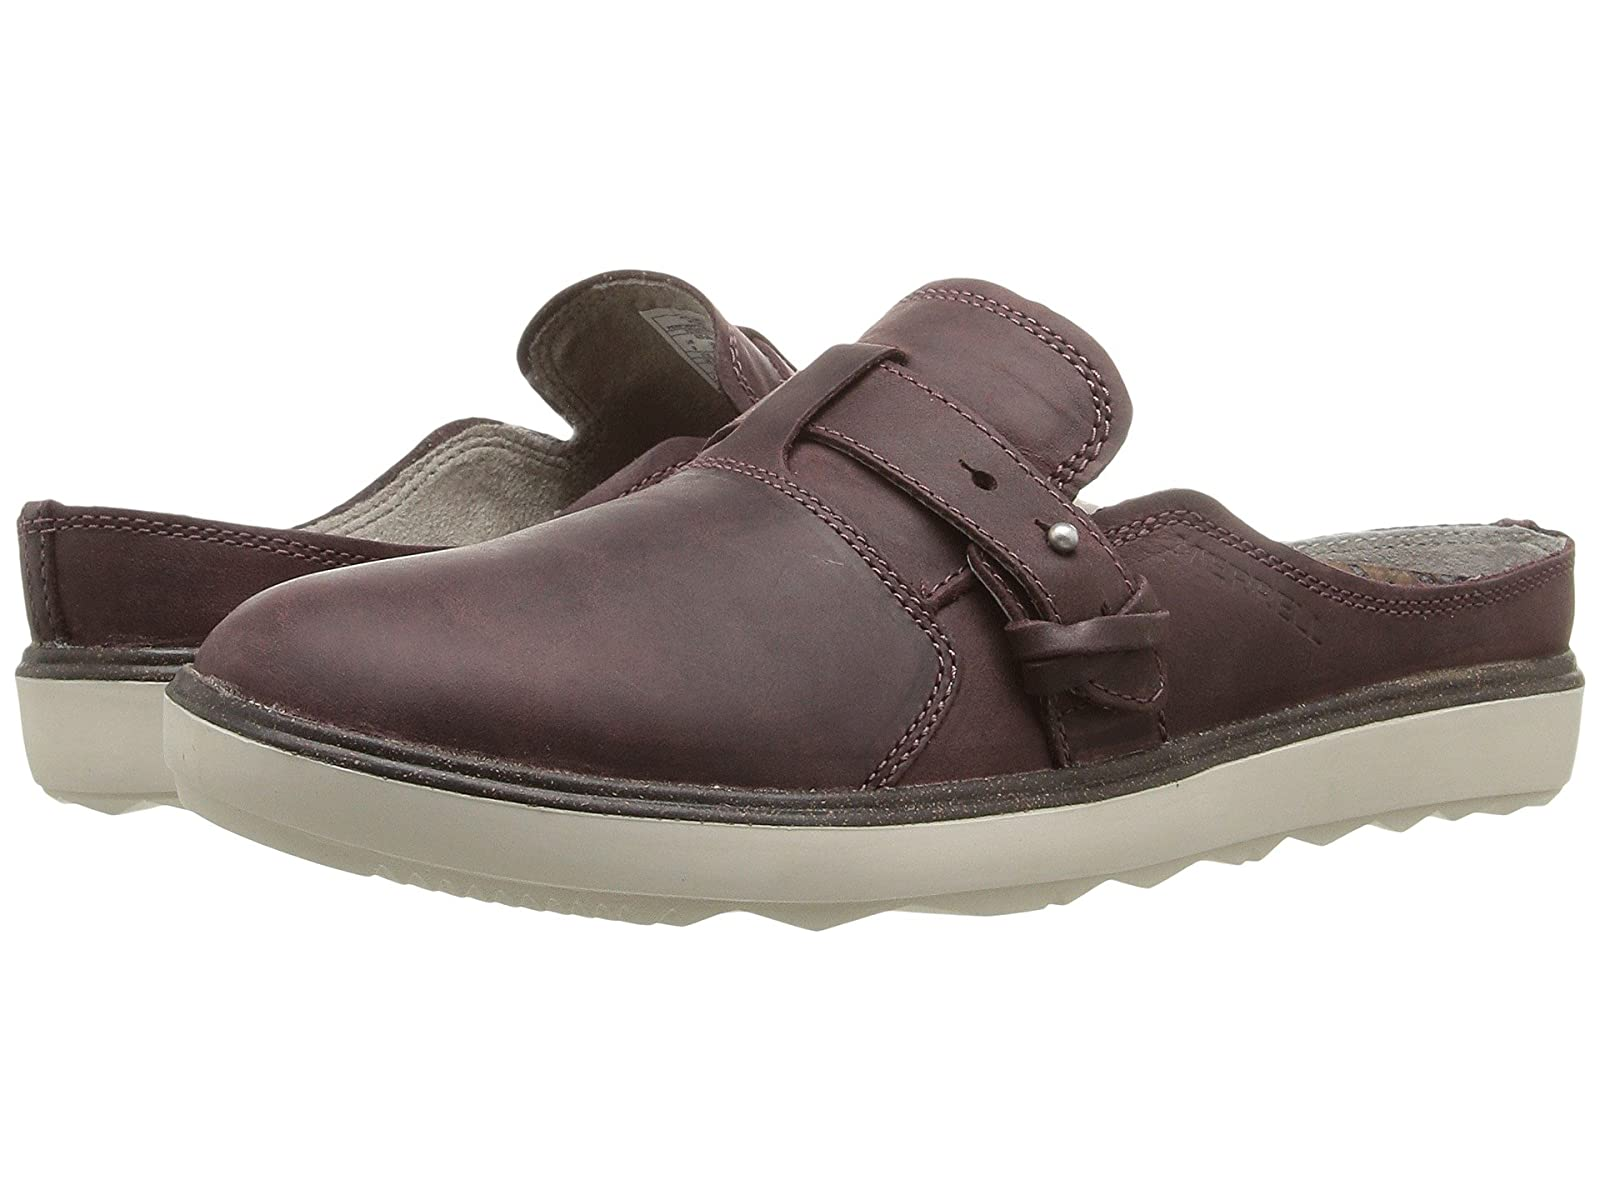 Merrell Around Town Slip-OnCheap and distinctive eye-catching shoes